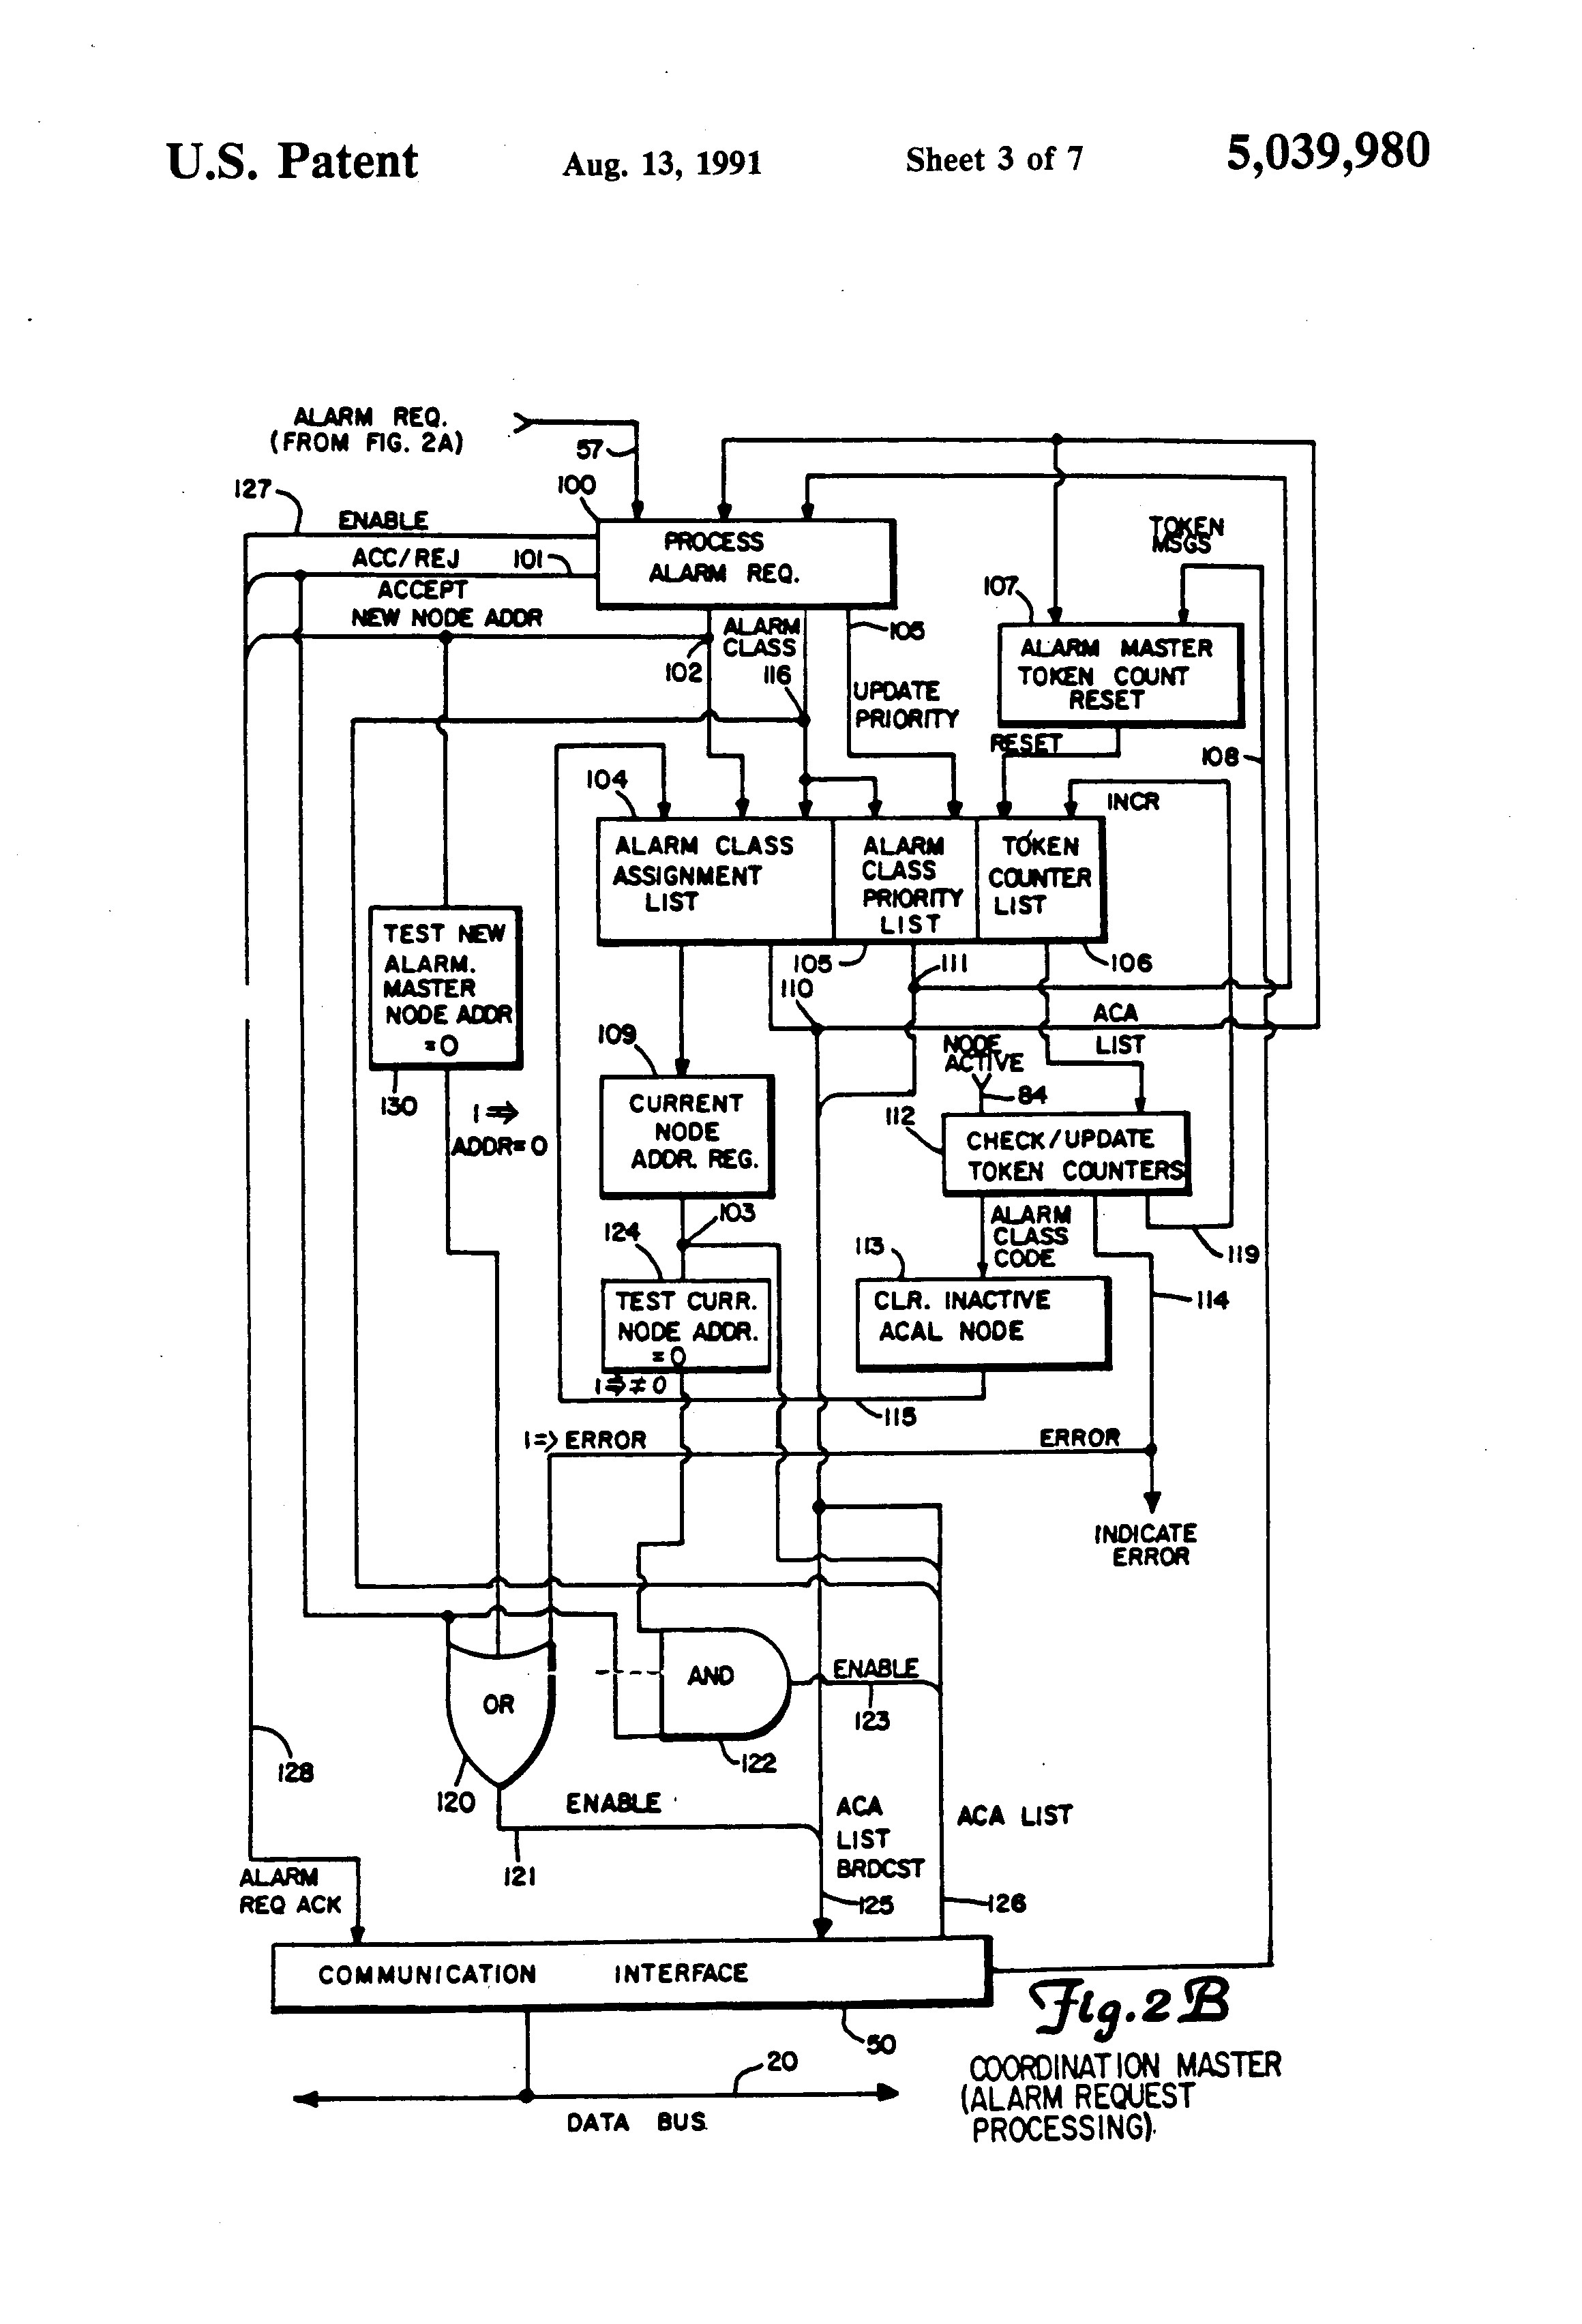 true twt 27f wiring diagram true gdm 72f wiring diagram | free wiring diagram four loop true bypass pedal wiring diagram